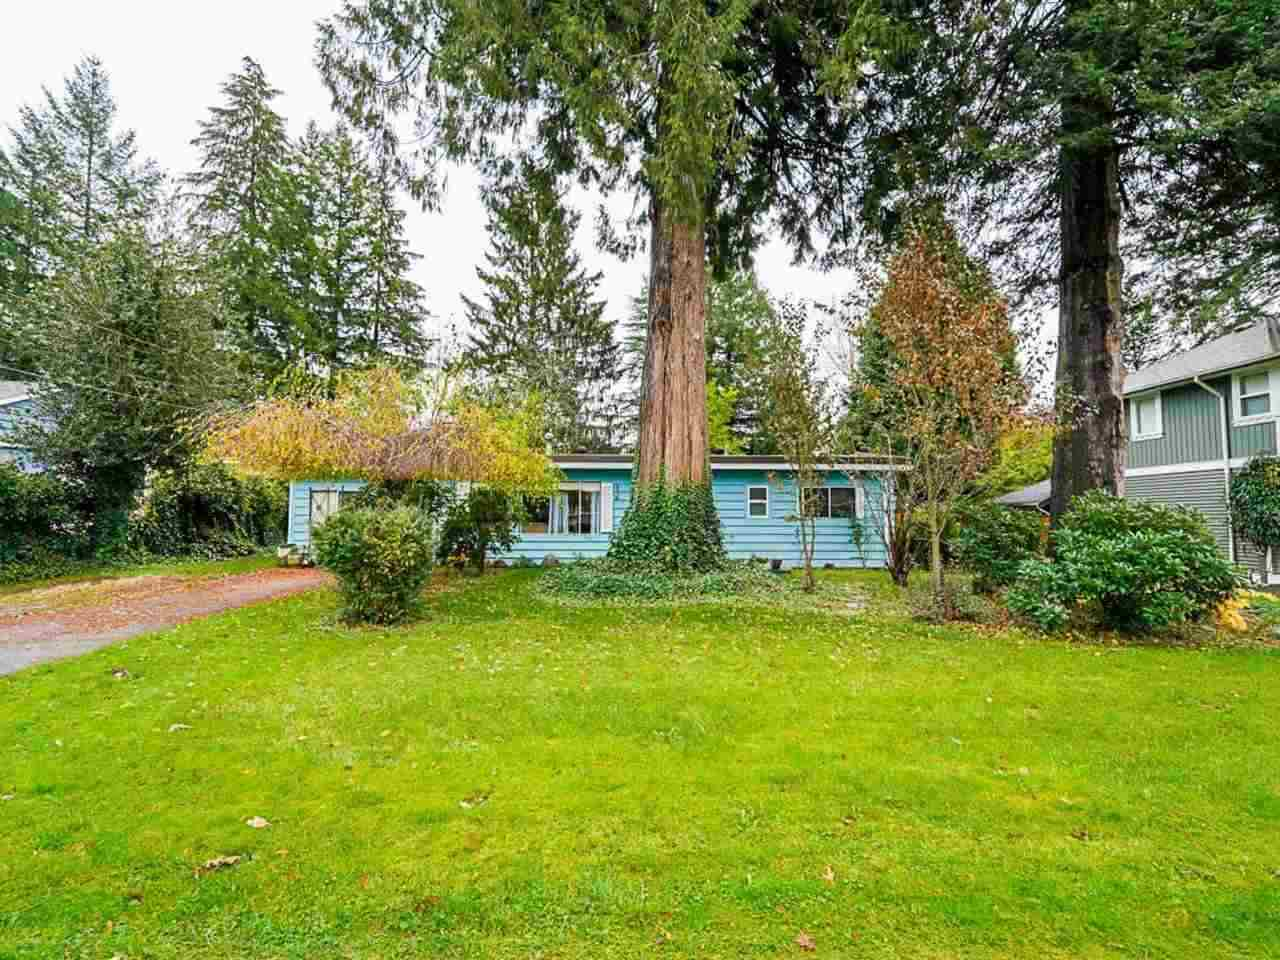 8932 HADDEN STREET - Fort Langley House/Single Family for sale, 3 Bedrooms (R2590748) - #1